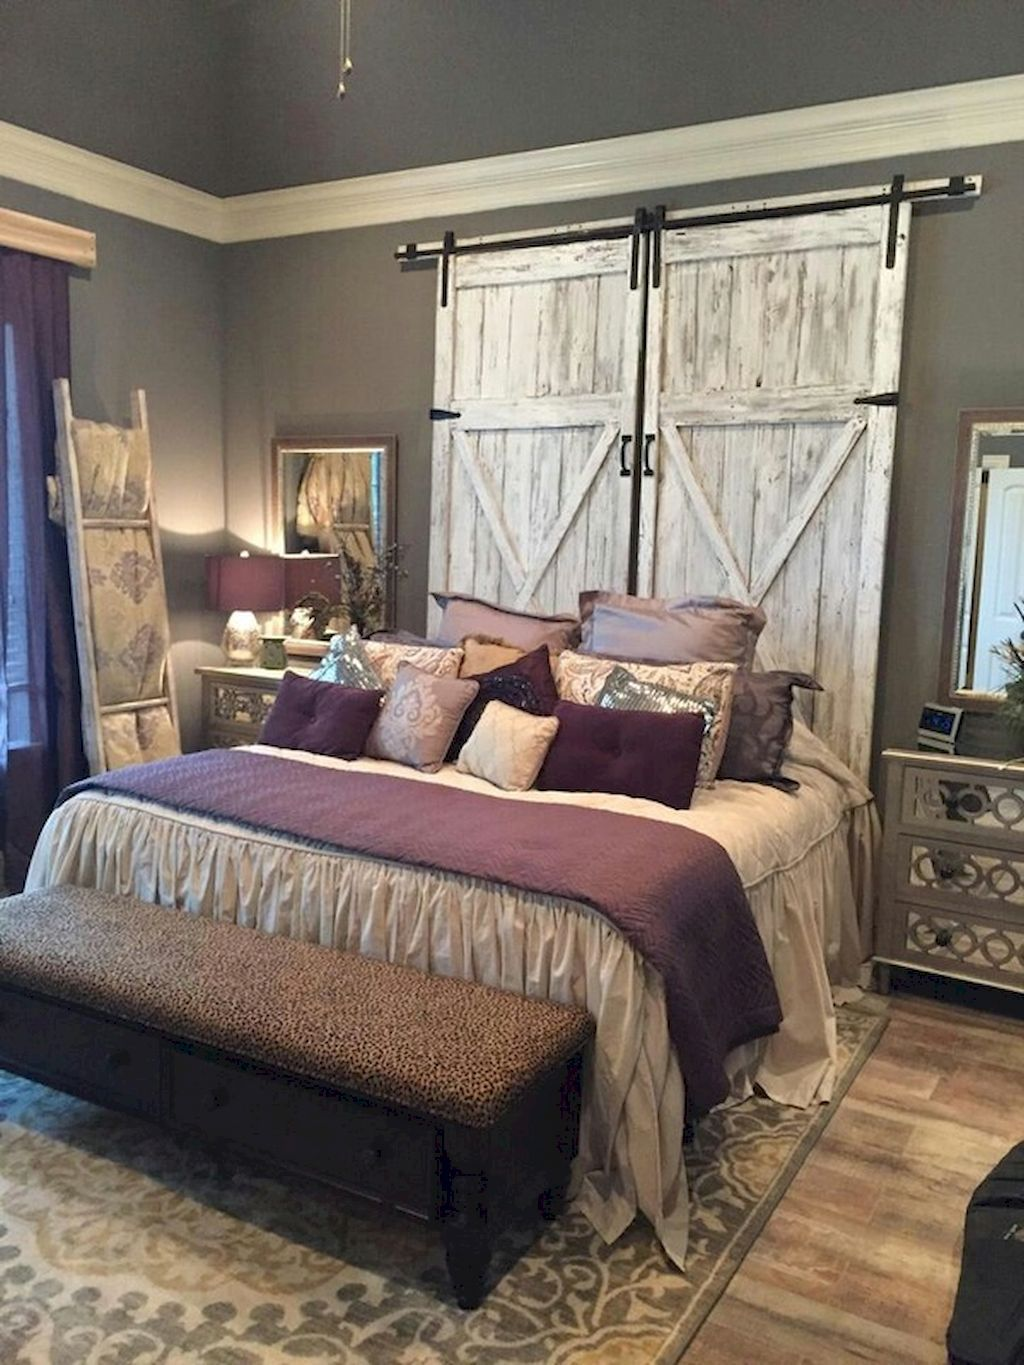 66 Farmhouse Style Master Bedroom Decorating Ideas (44)